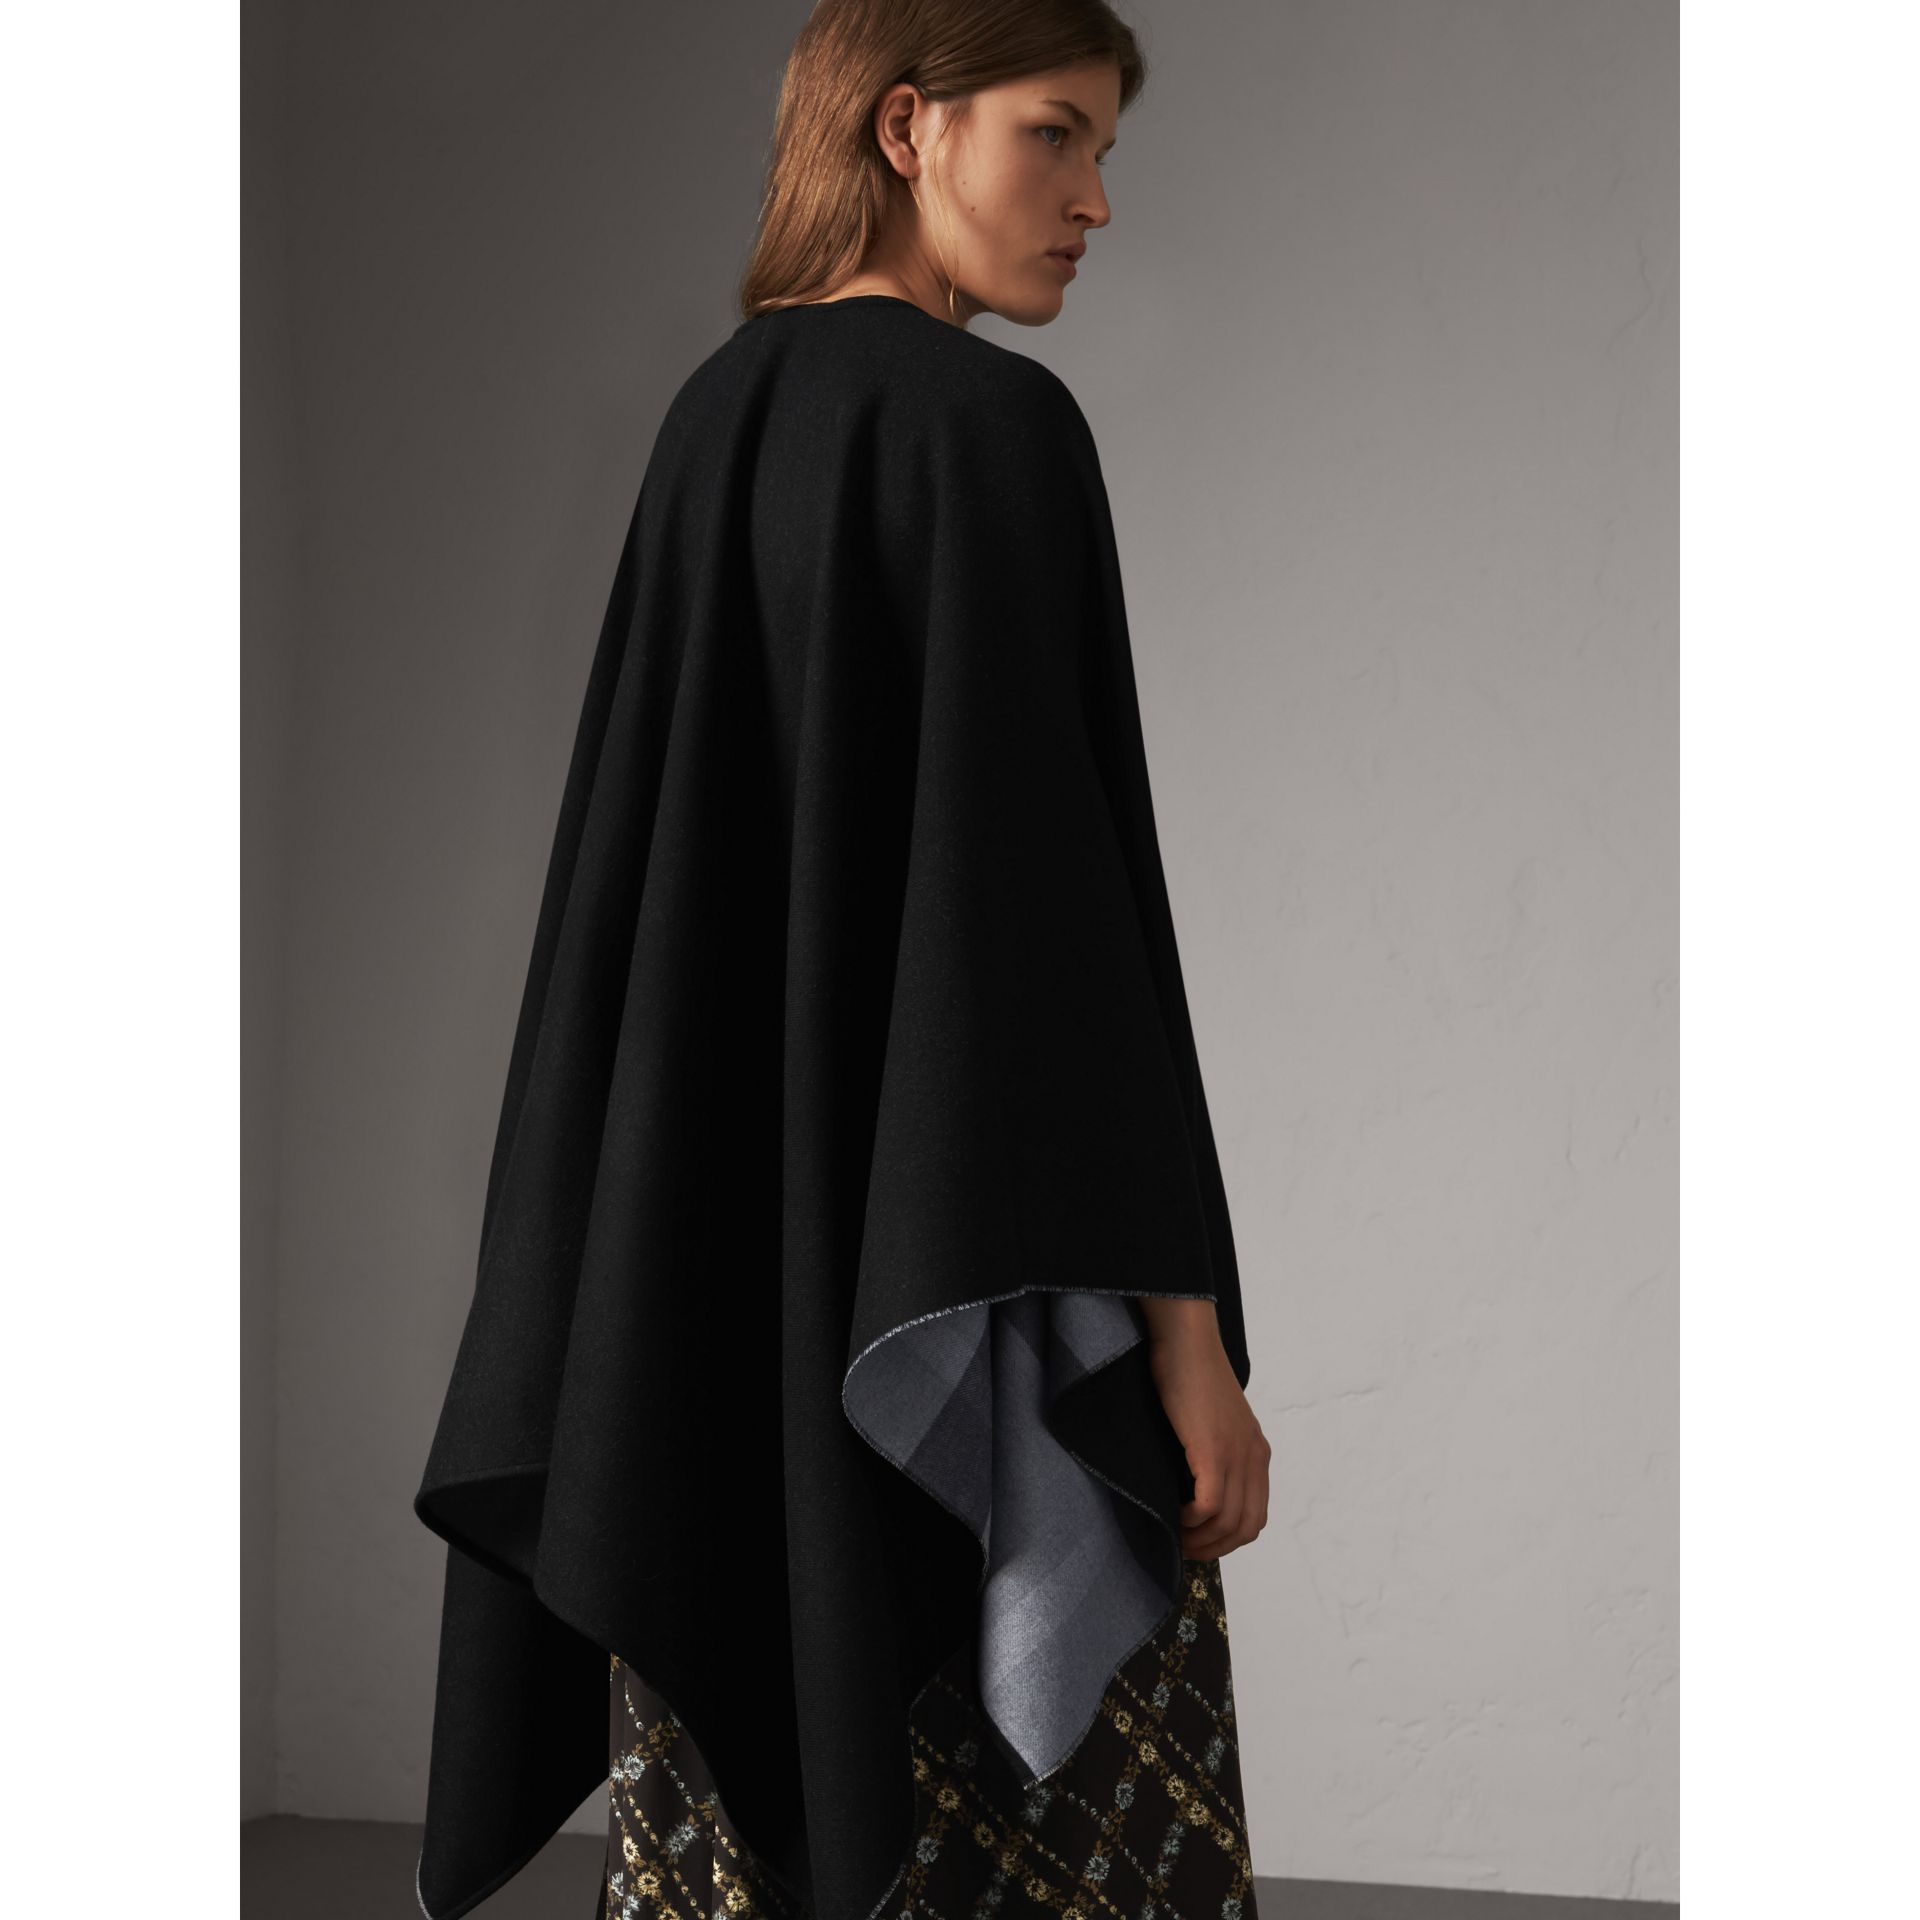 Reversible Check Merino Wool Poncho in Charcoal - Women | Burberry Australia - gallery image 2